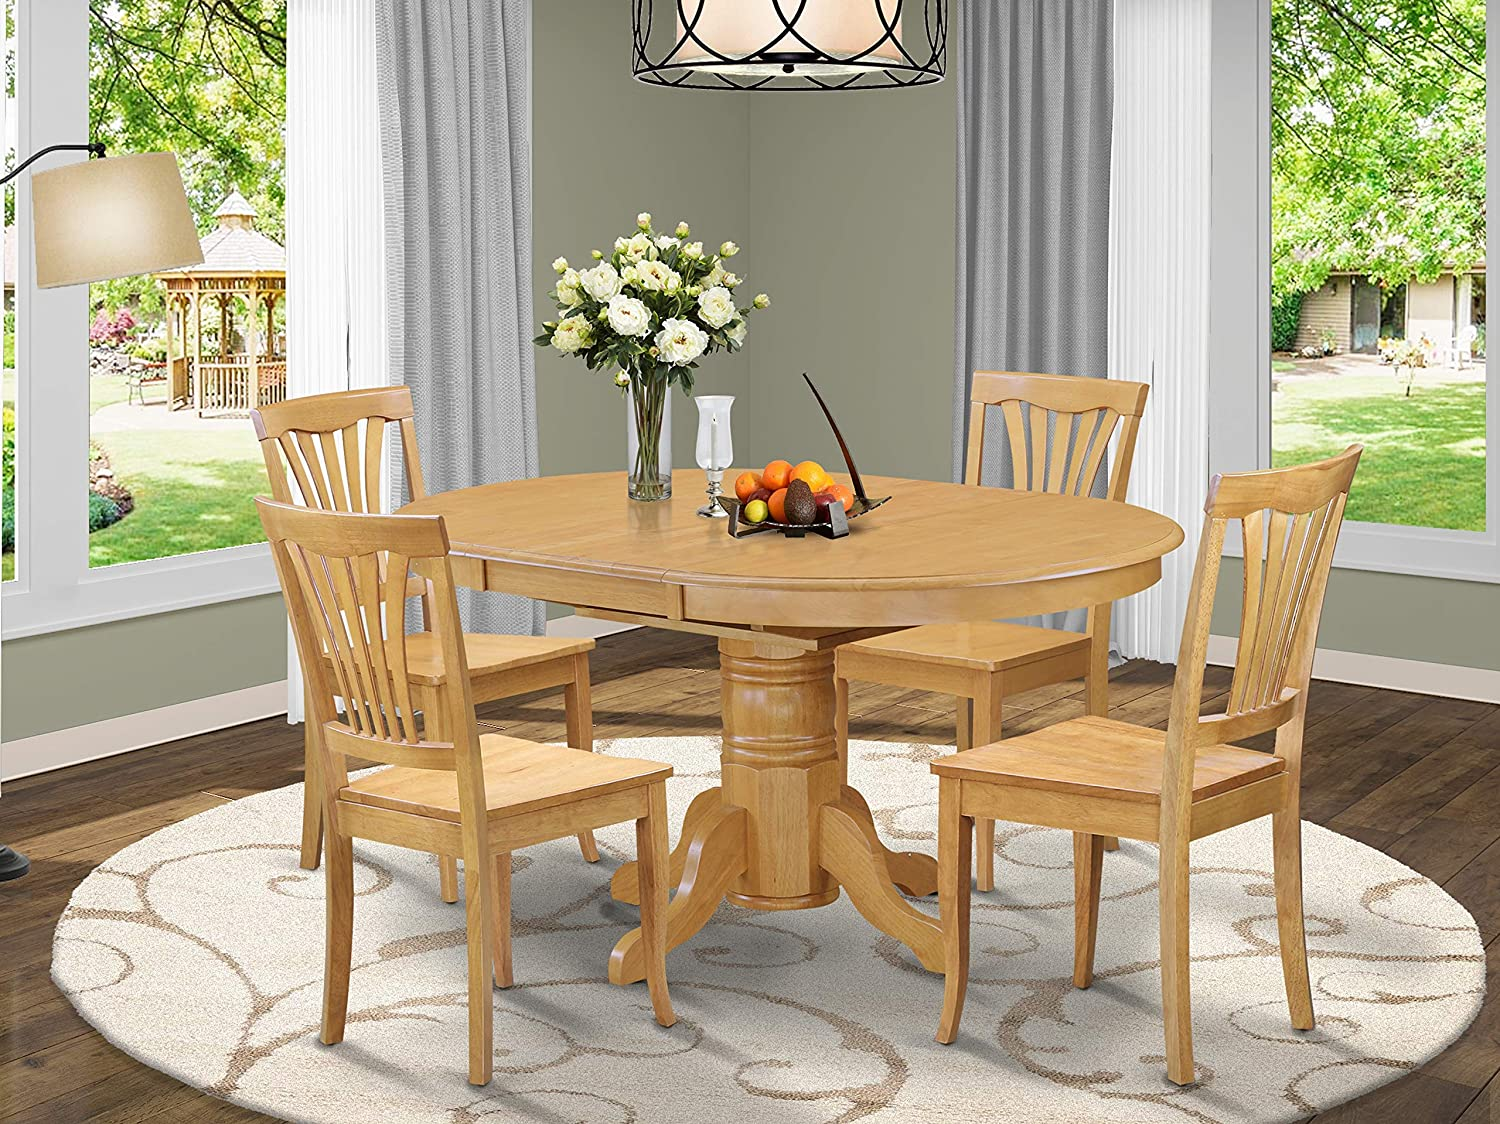 East West Furniture wooden dining table set 9 Great wooden Chairs   A  Lovely round dining table  Oak Color Wooden Seat cherry and Oak Butterfly  Leaf ...